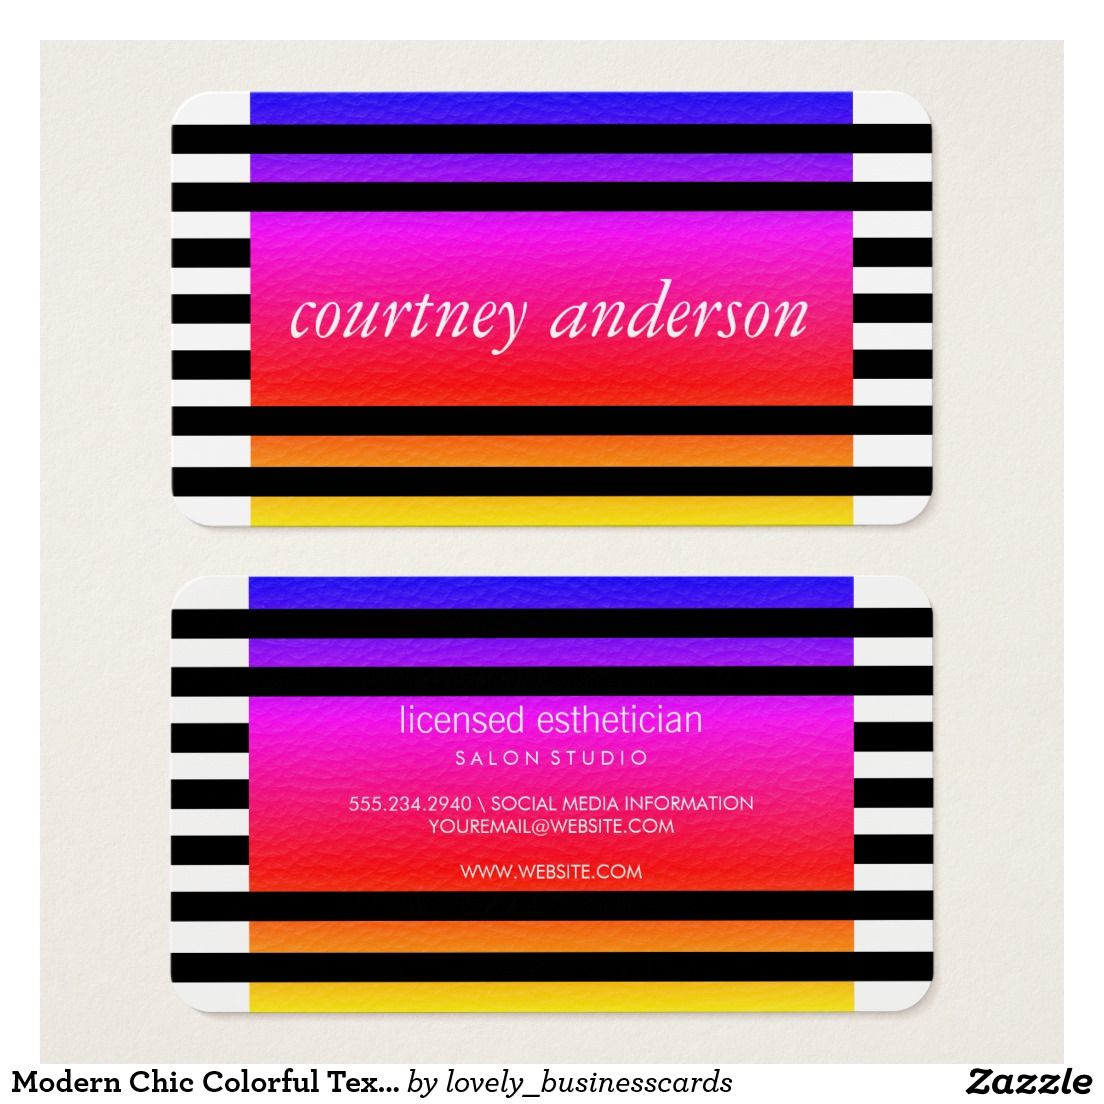 Modern Chic Colorful Texture Black Stripes Business Card #businesscards #freelancemakeupartist #makeupartist #stylishcorporate #mod #luxe #stylish #fashionblogger #eyecatching #colorful #bold #freelanceartist #stripes #lines #classicbusinesscards #chic #contemporary